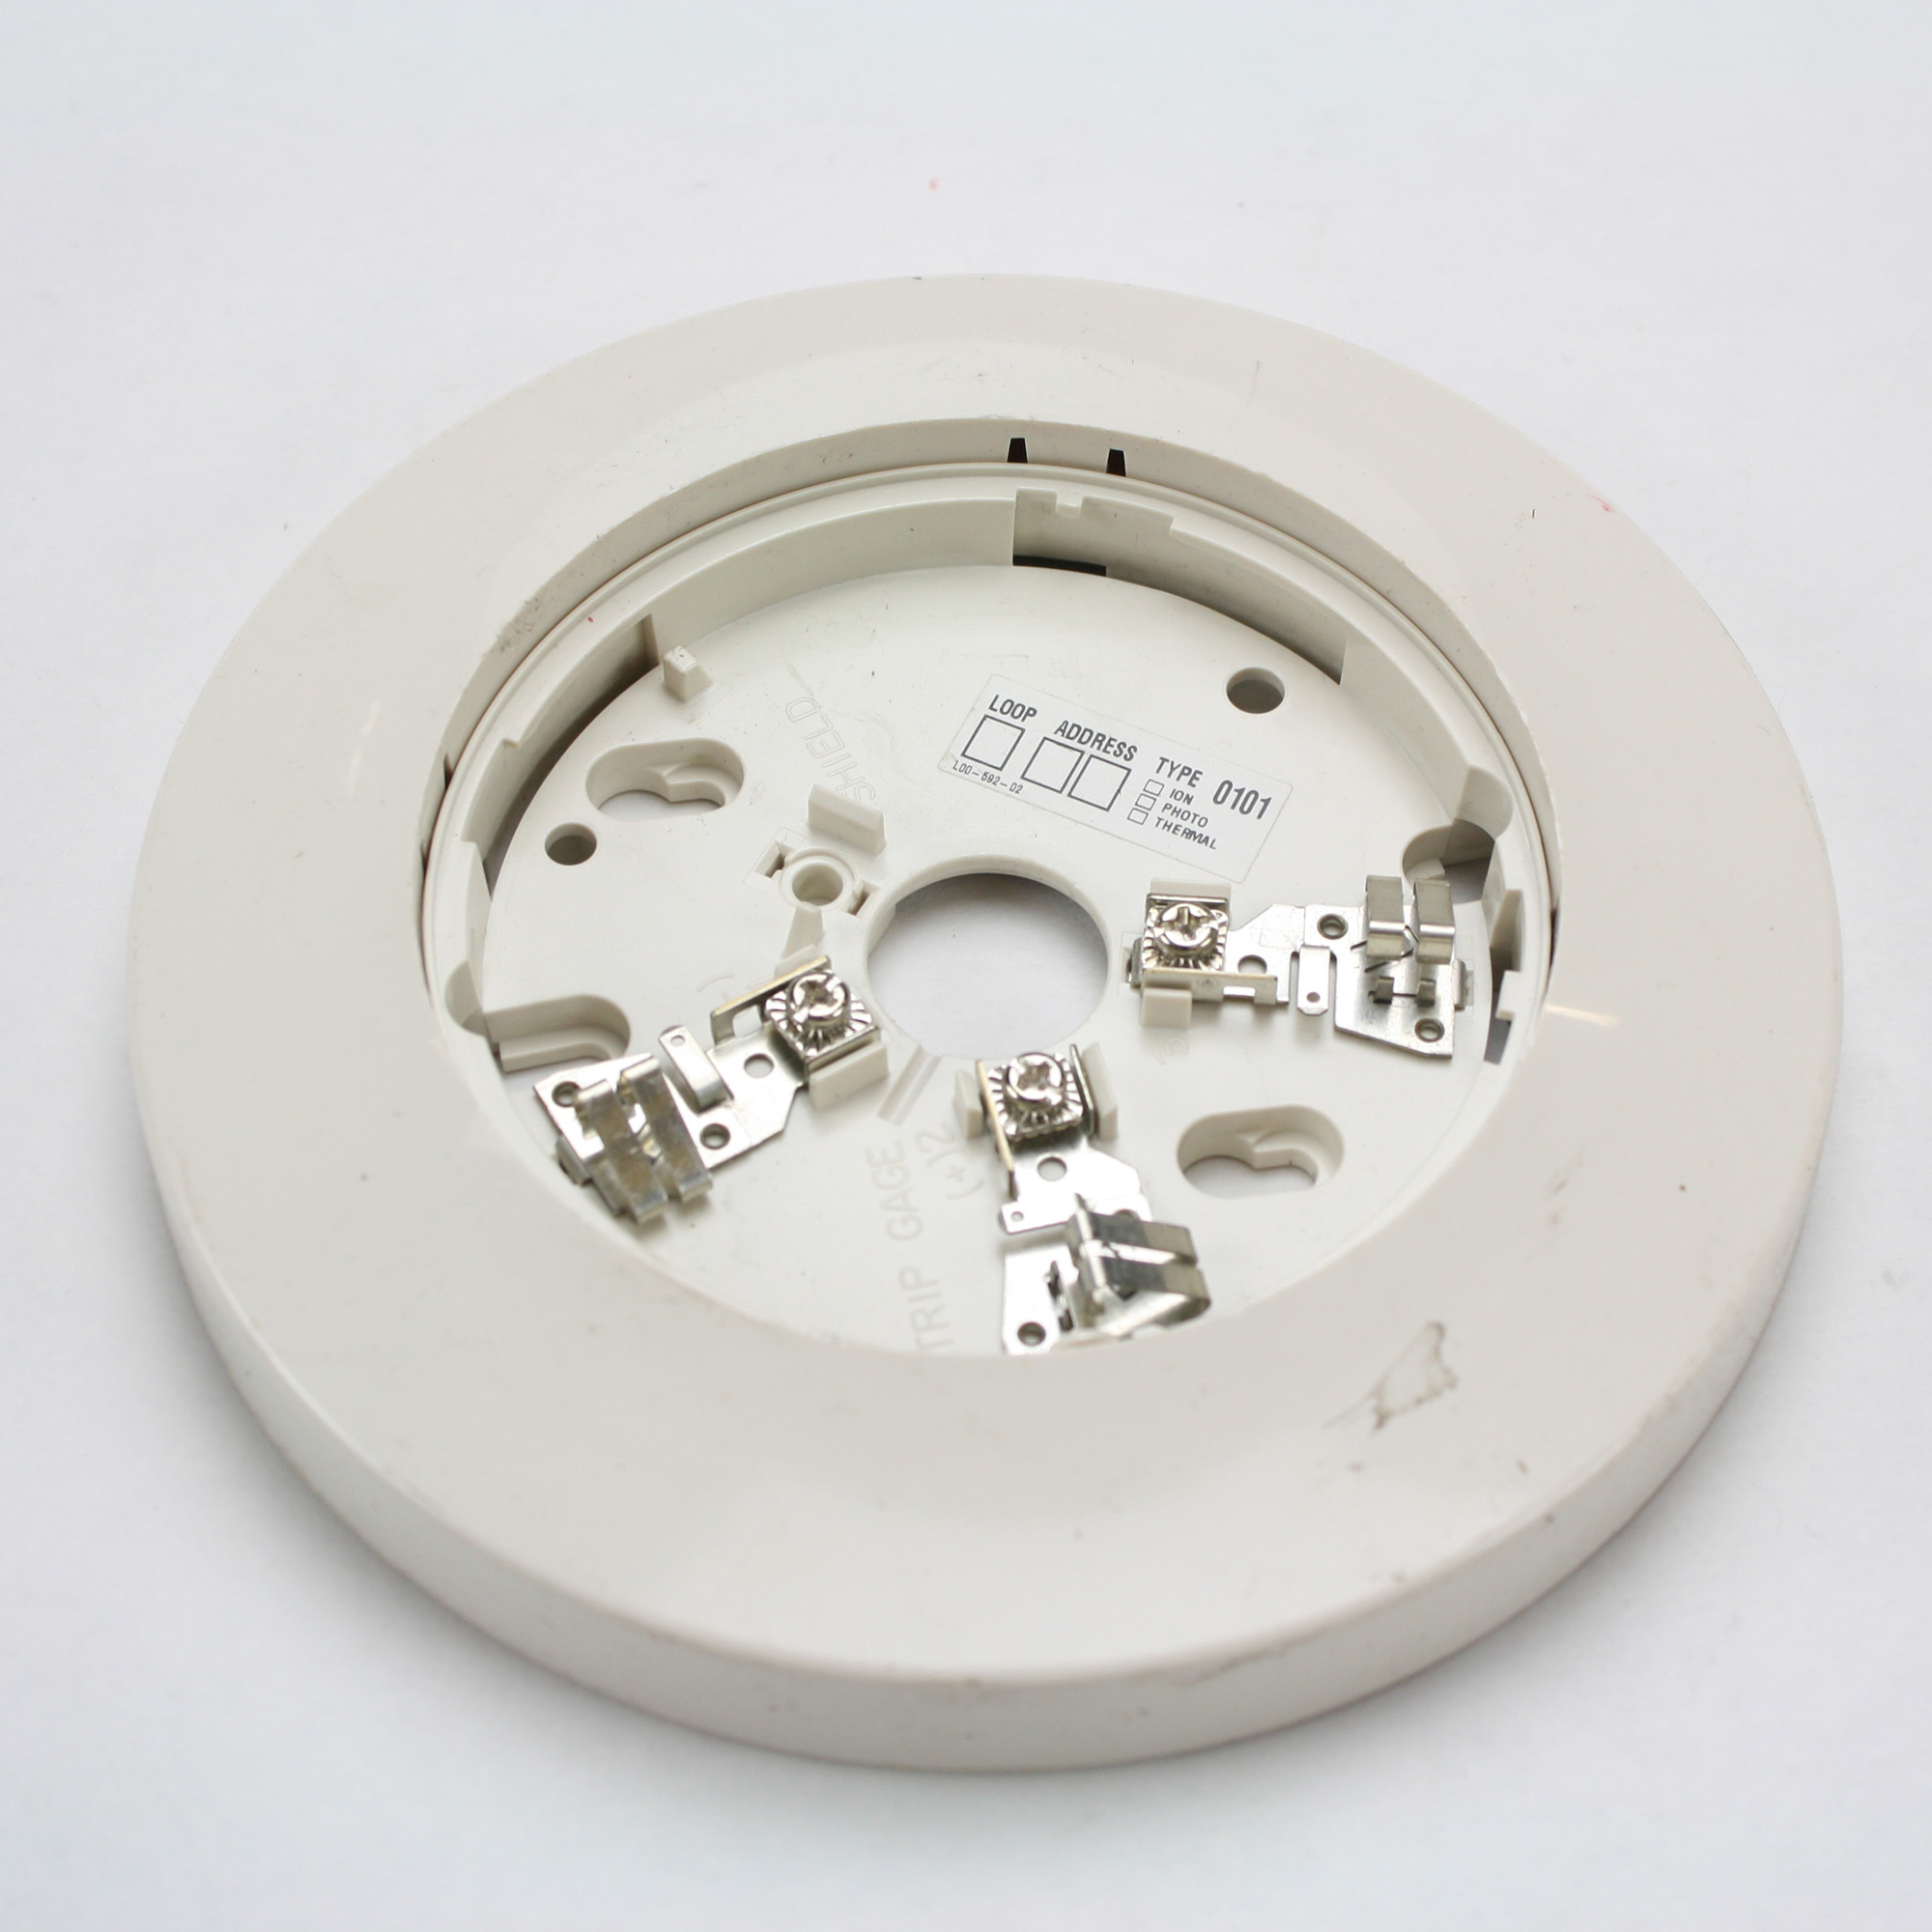 Fci Gamewell Honeywell Adb Flf Fire Alarm Intelligent Flanged Wiring Diagram This Auction Is For 1 Mounting Detector